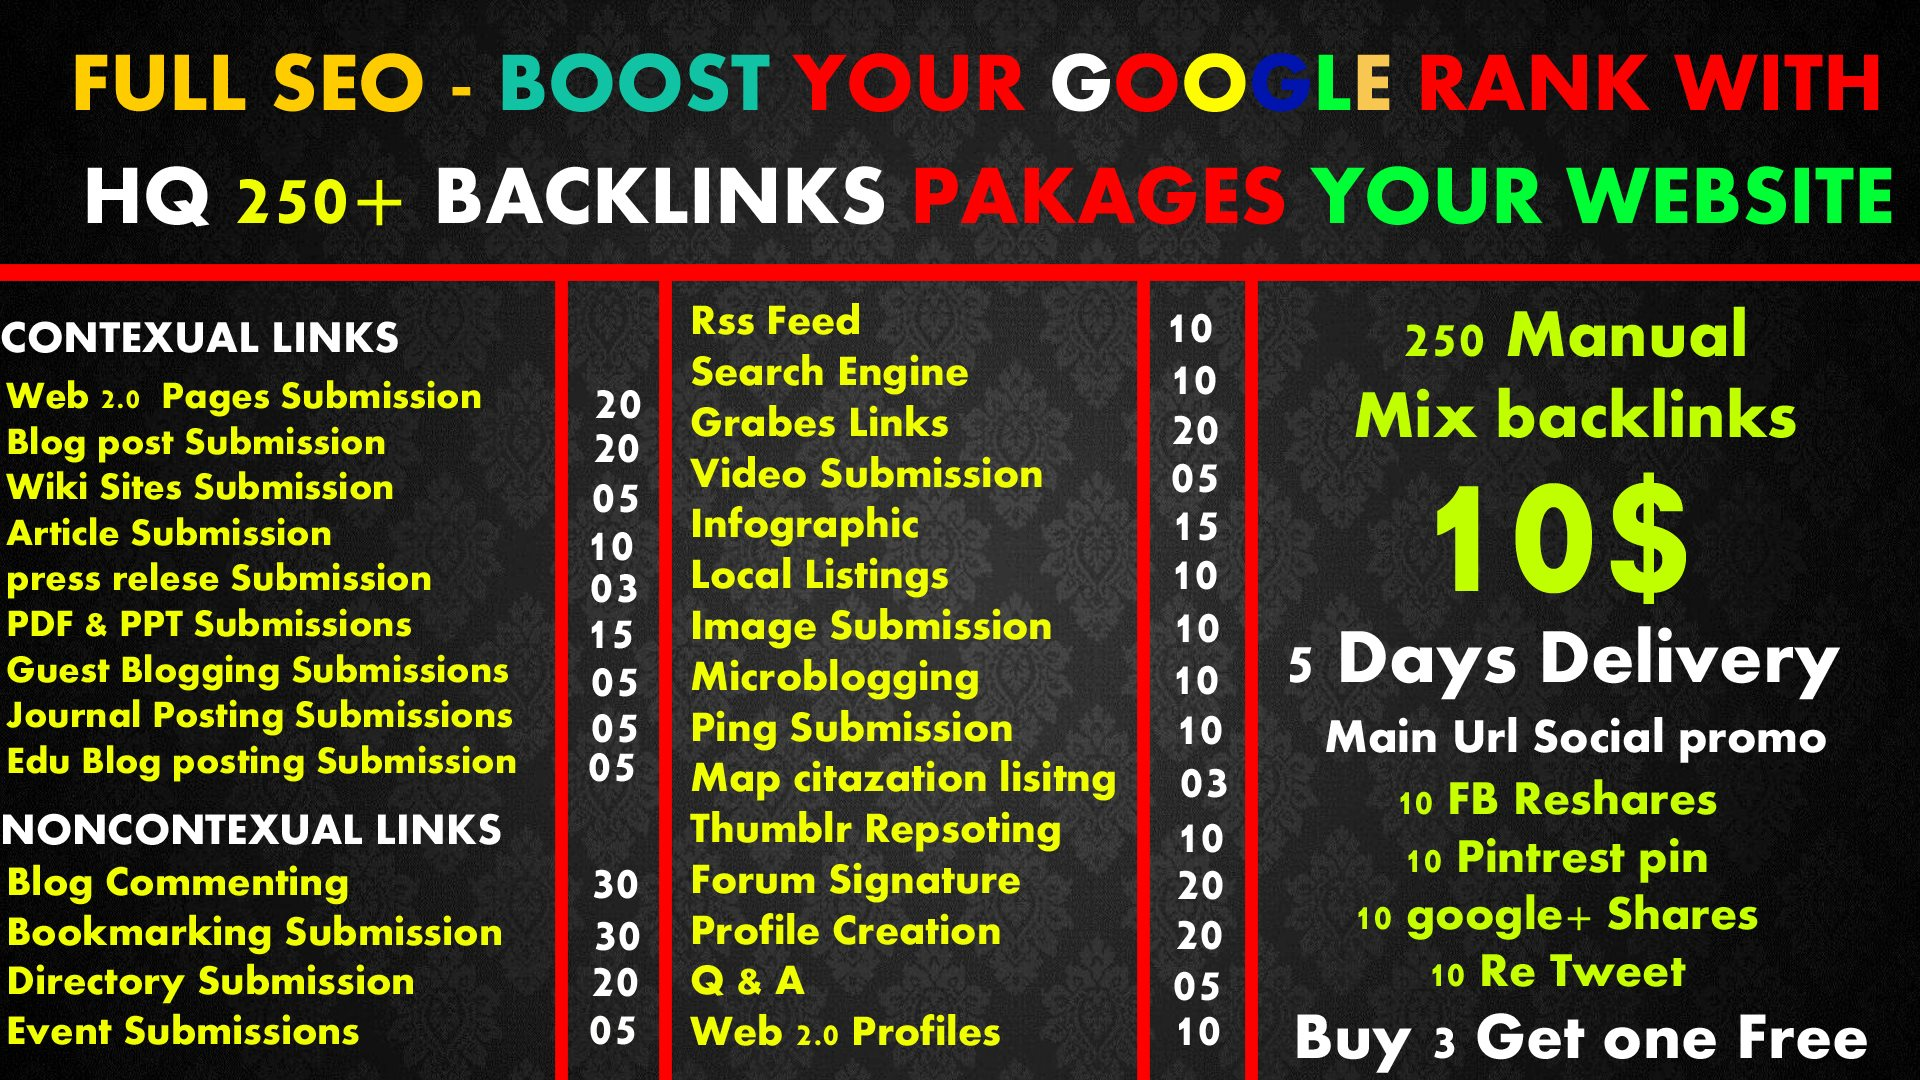 Increase Your Google RANKINGS With High Pr Seo Backlinks for $5